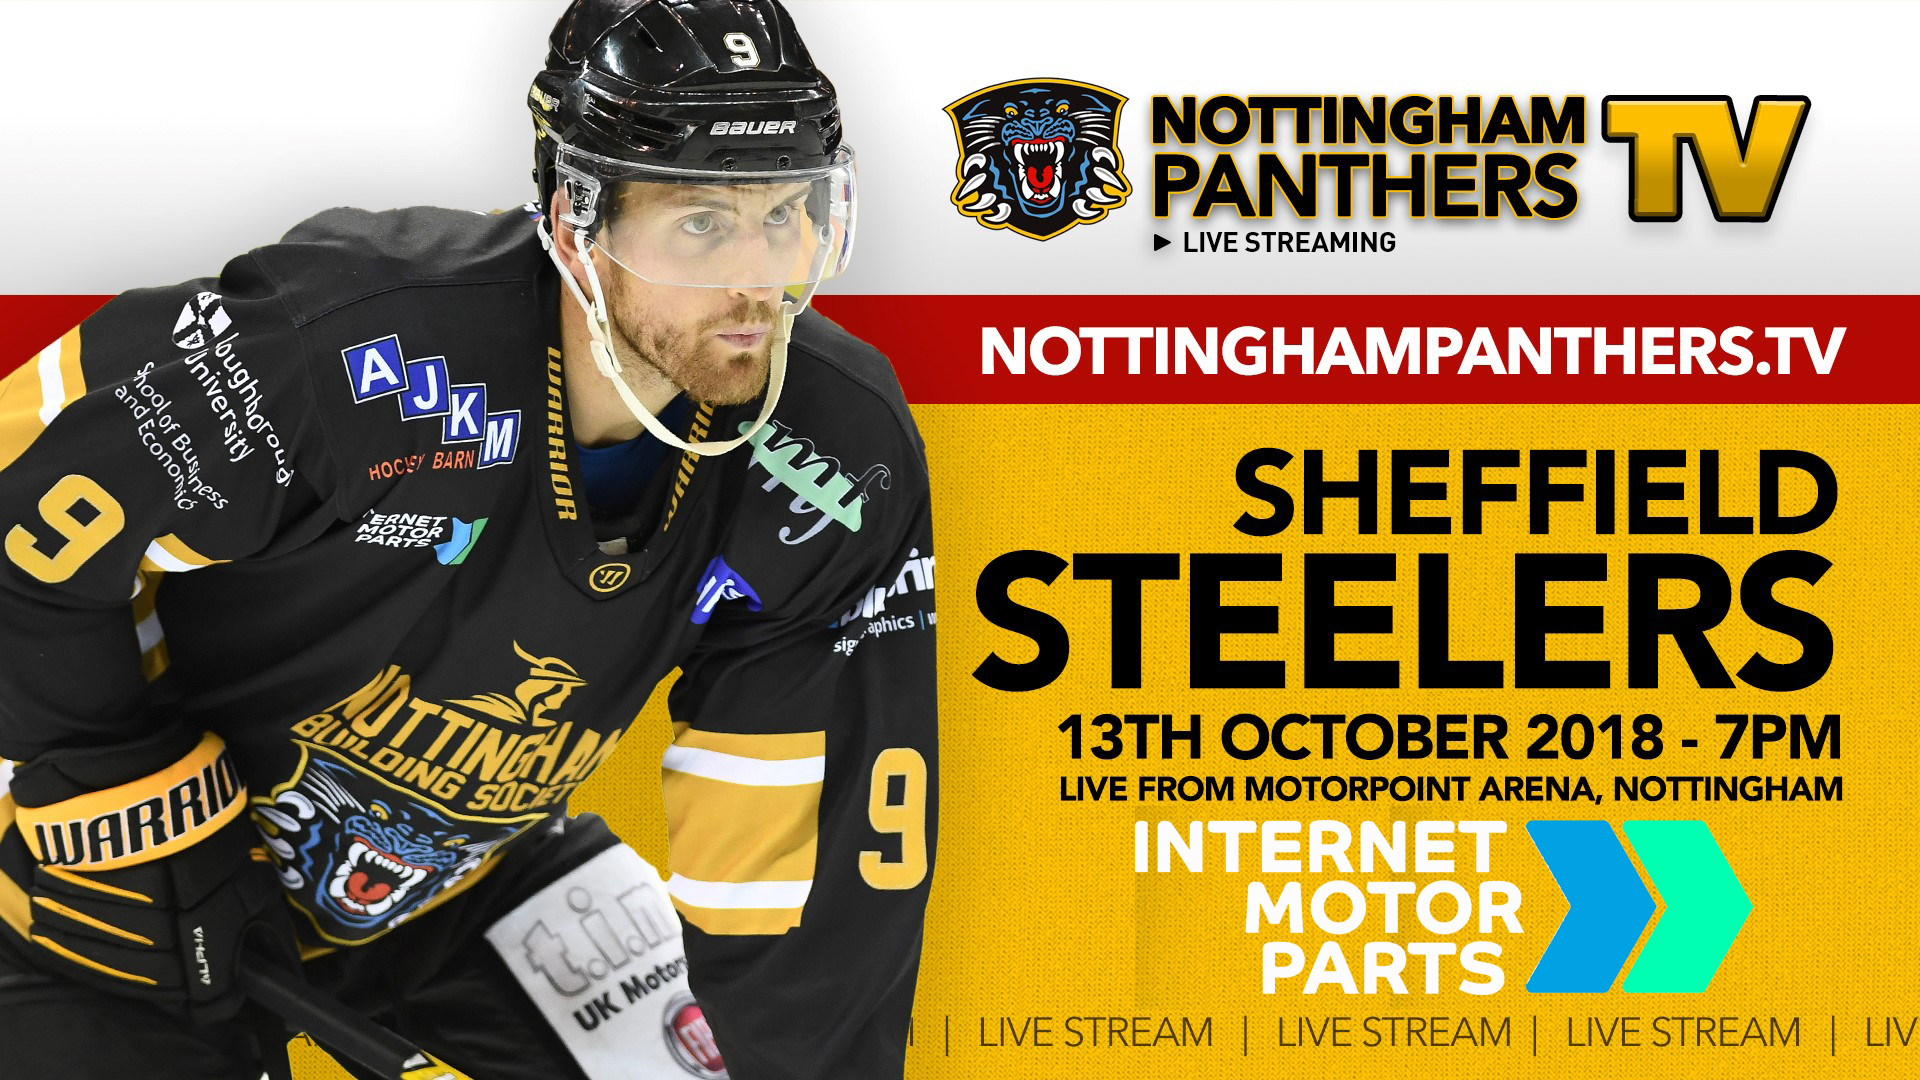 Don't miss a shift! - Nottingham Panthers